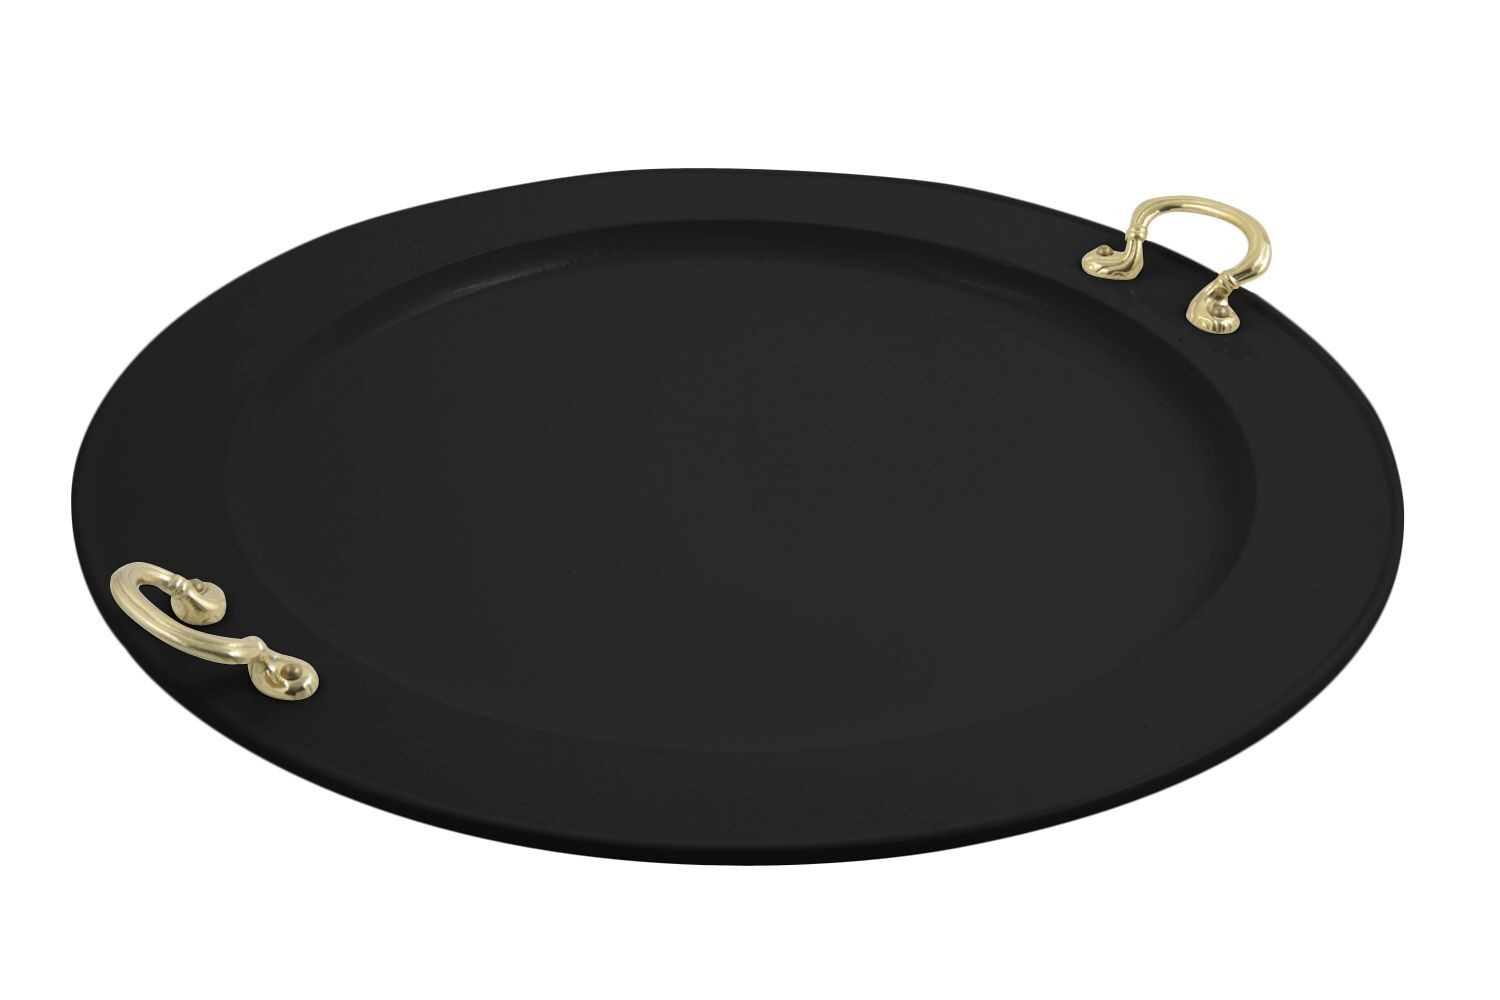 "Bon Chef 2050BH&LS Round Serving Tray with Brass Handles, Sandstone 22"" Dia."